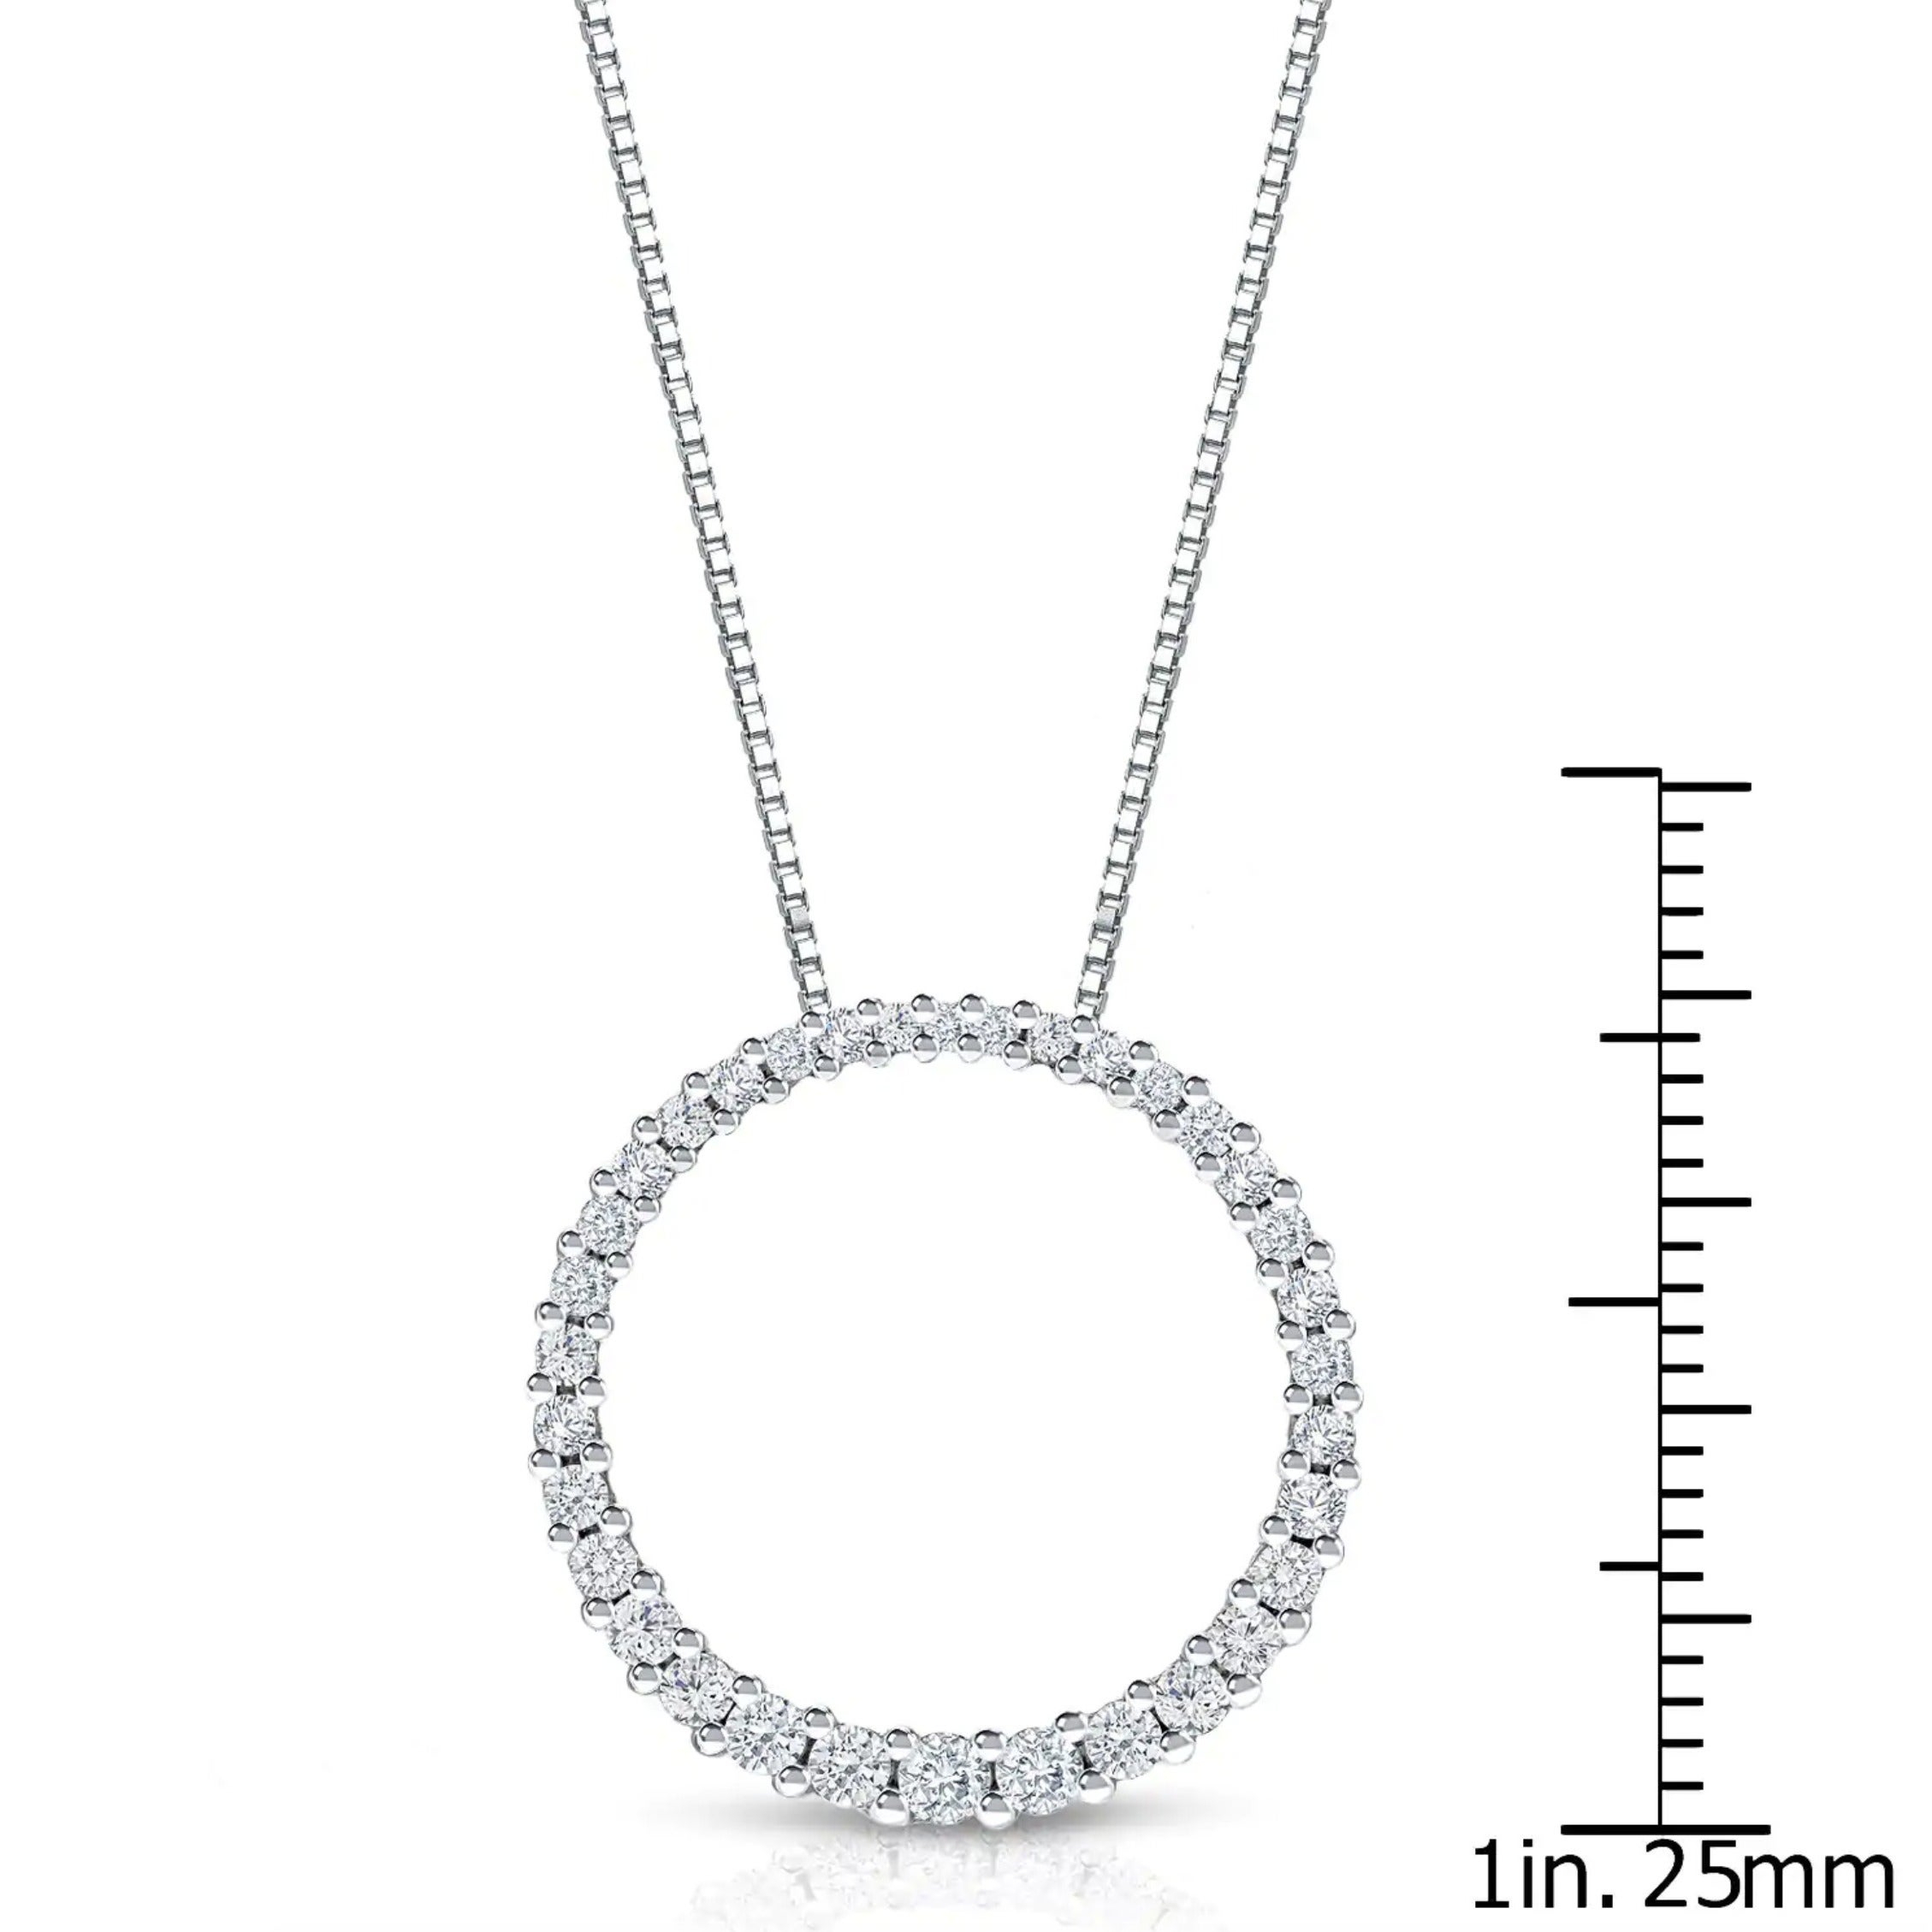 Auriya 14K White Gold Fashion Circle Of Life Diamond Necklace With Regard To Newest Circle Of Sparkle Necklaces (View 3 of 25)